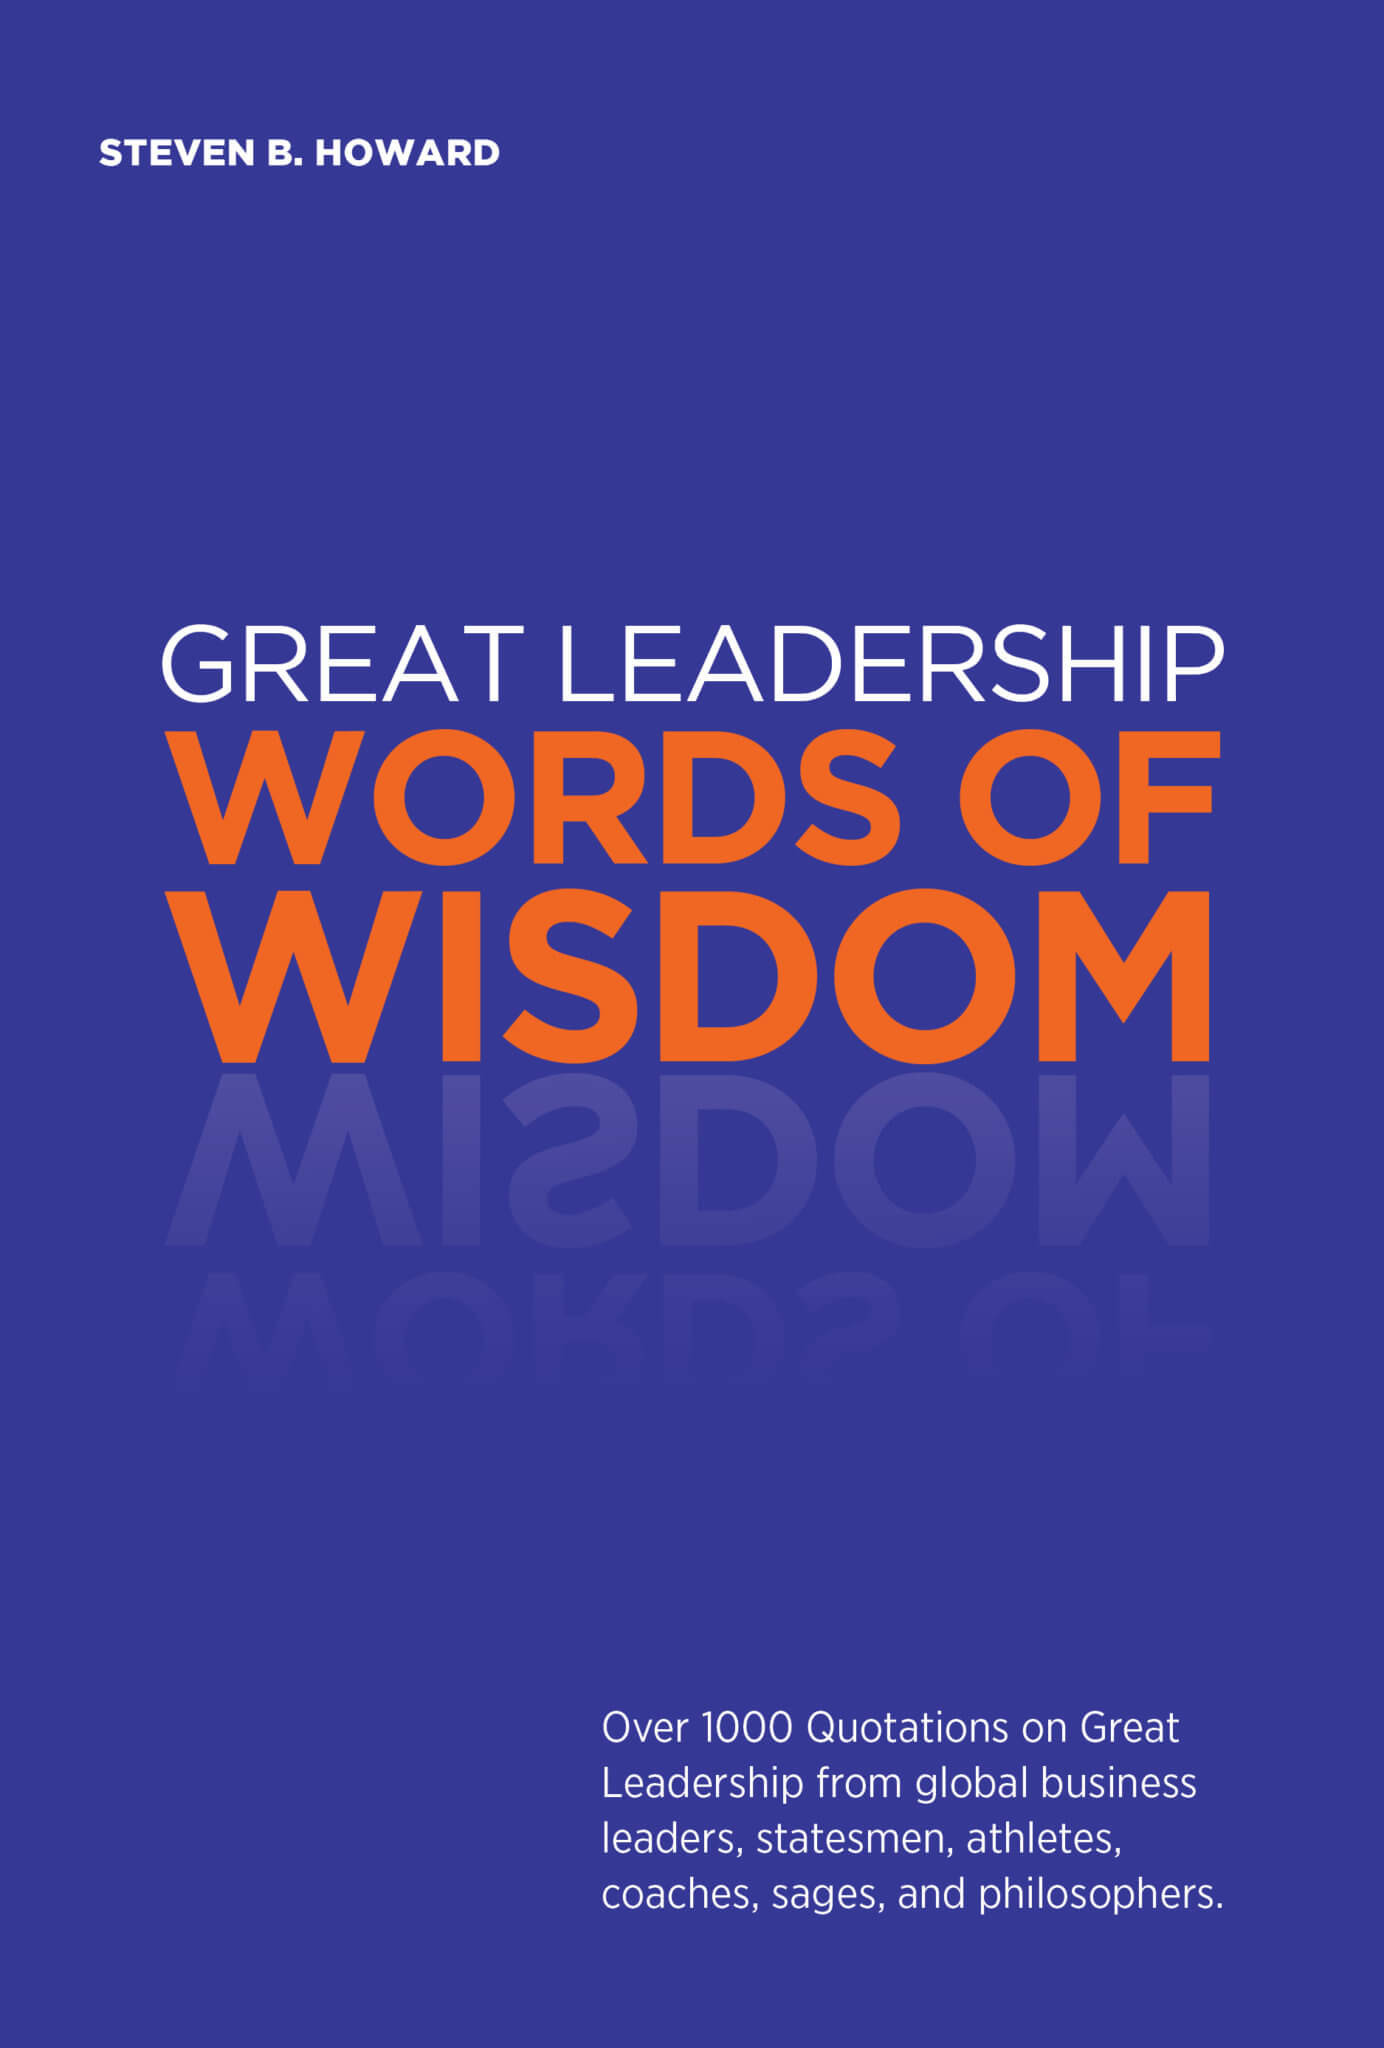 Leadership Philosophy Quotes  Great Quotes on Leadership Philosophy